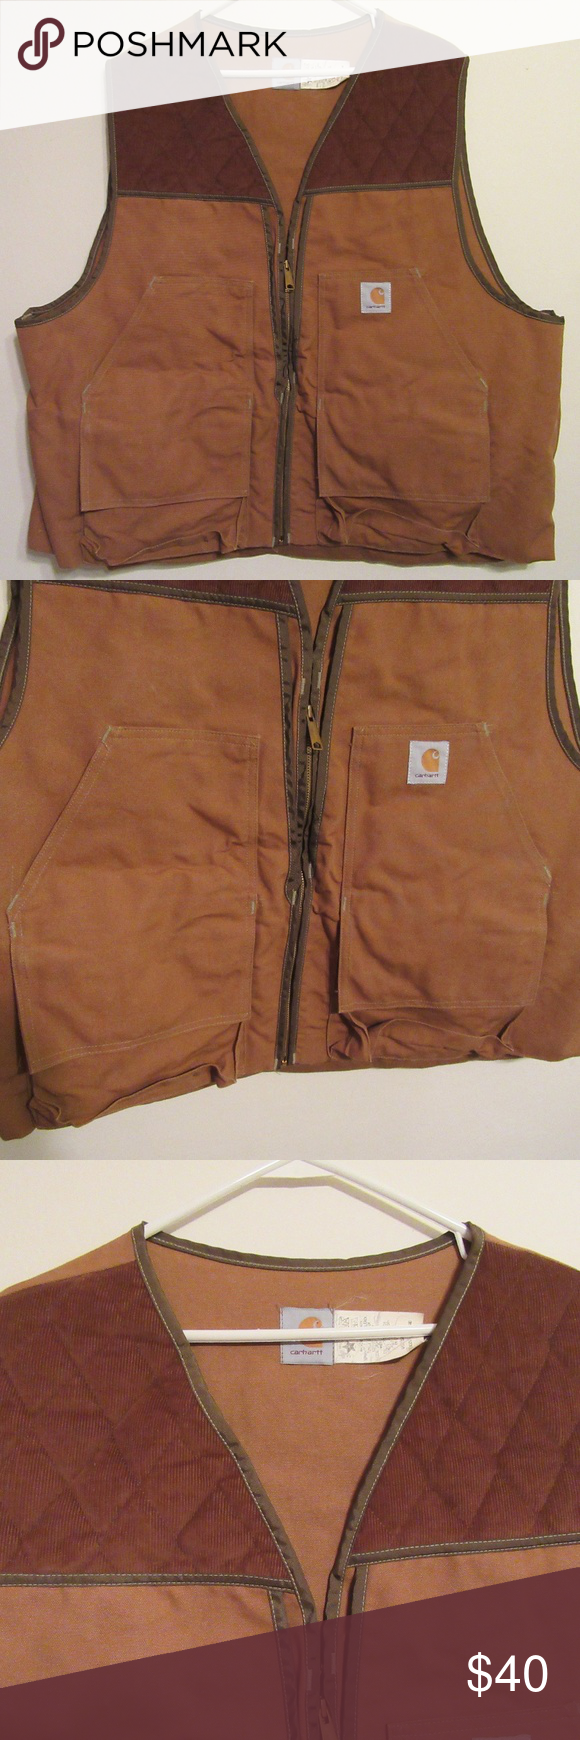 3acdeb61bdefa Carhartt Hunting Shooting Pheasant Bird Vest XXL Up for sale is a Carhartt  Hunting / Shooting